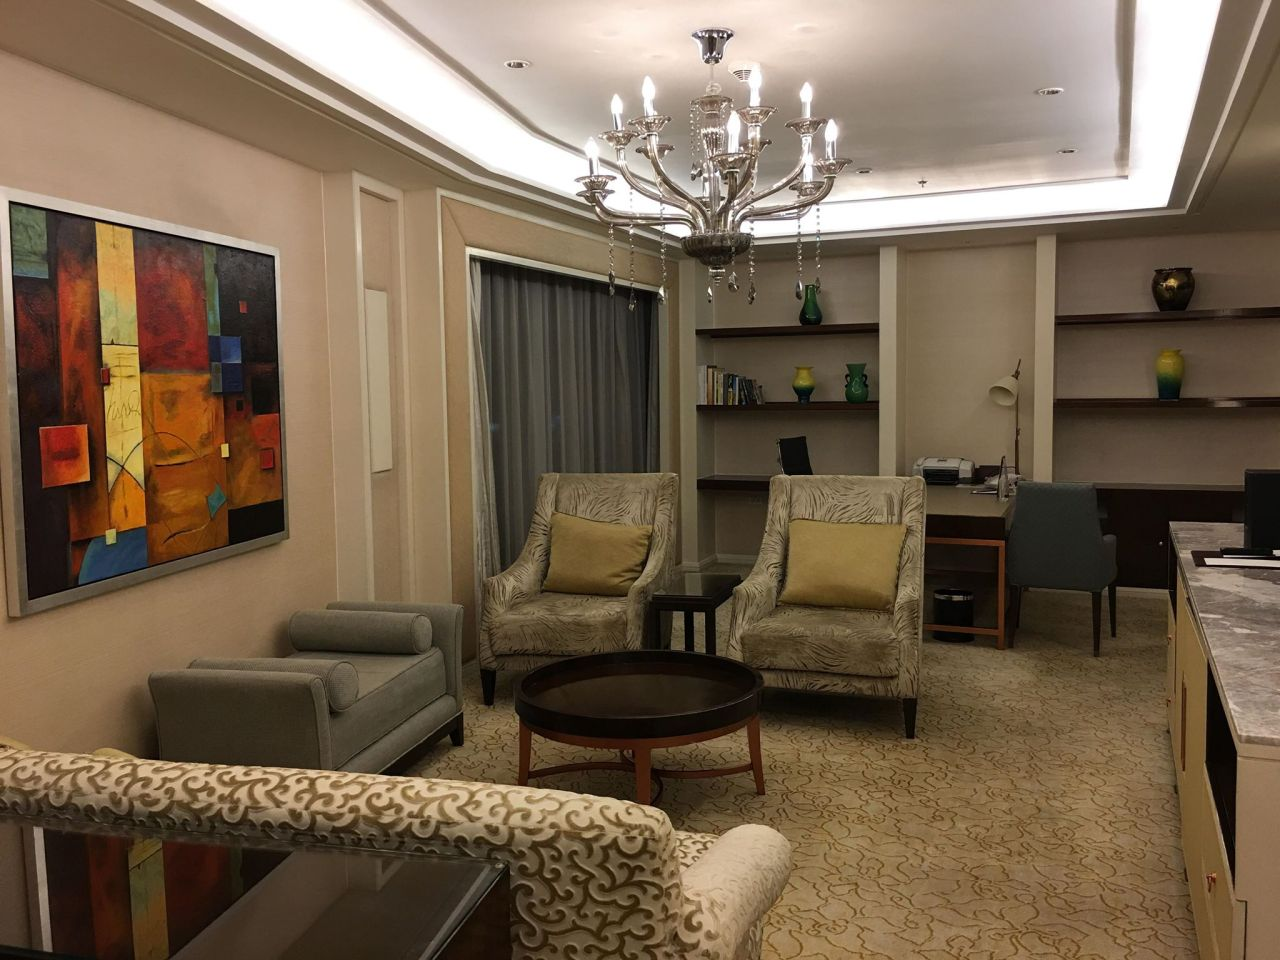 The living room at the EDSA Shangri-la Hotel